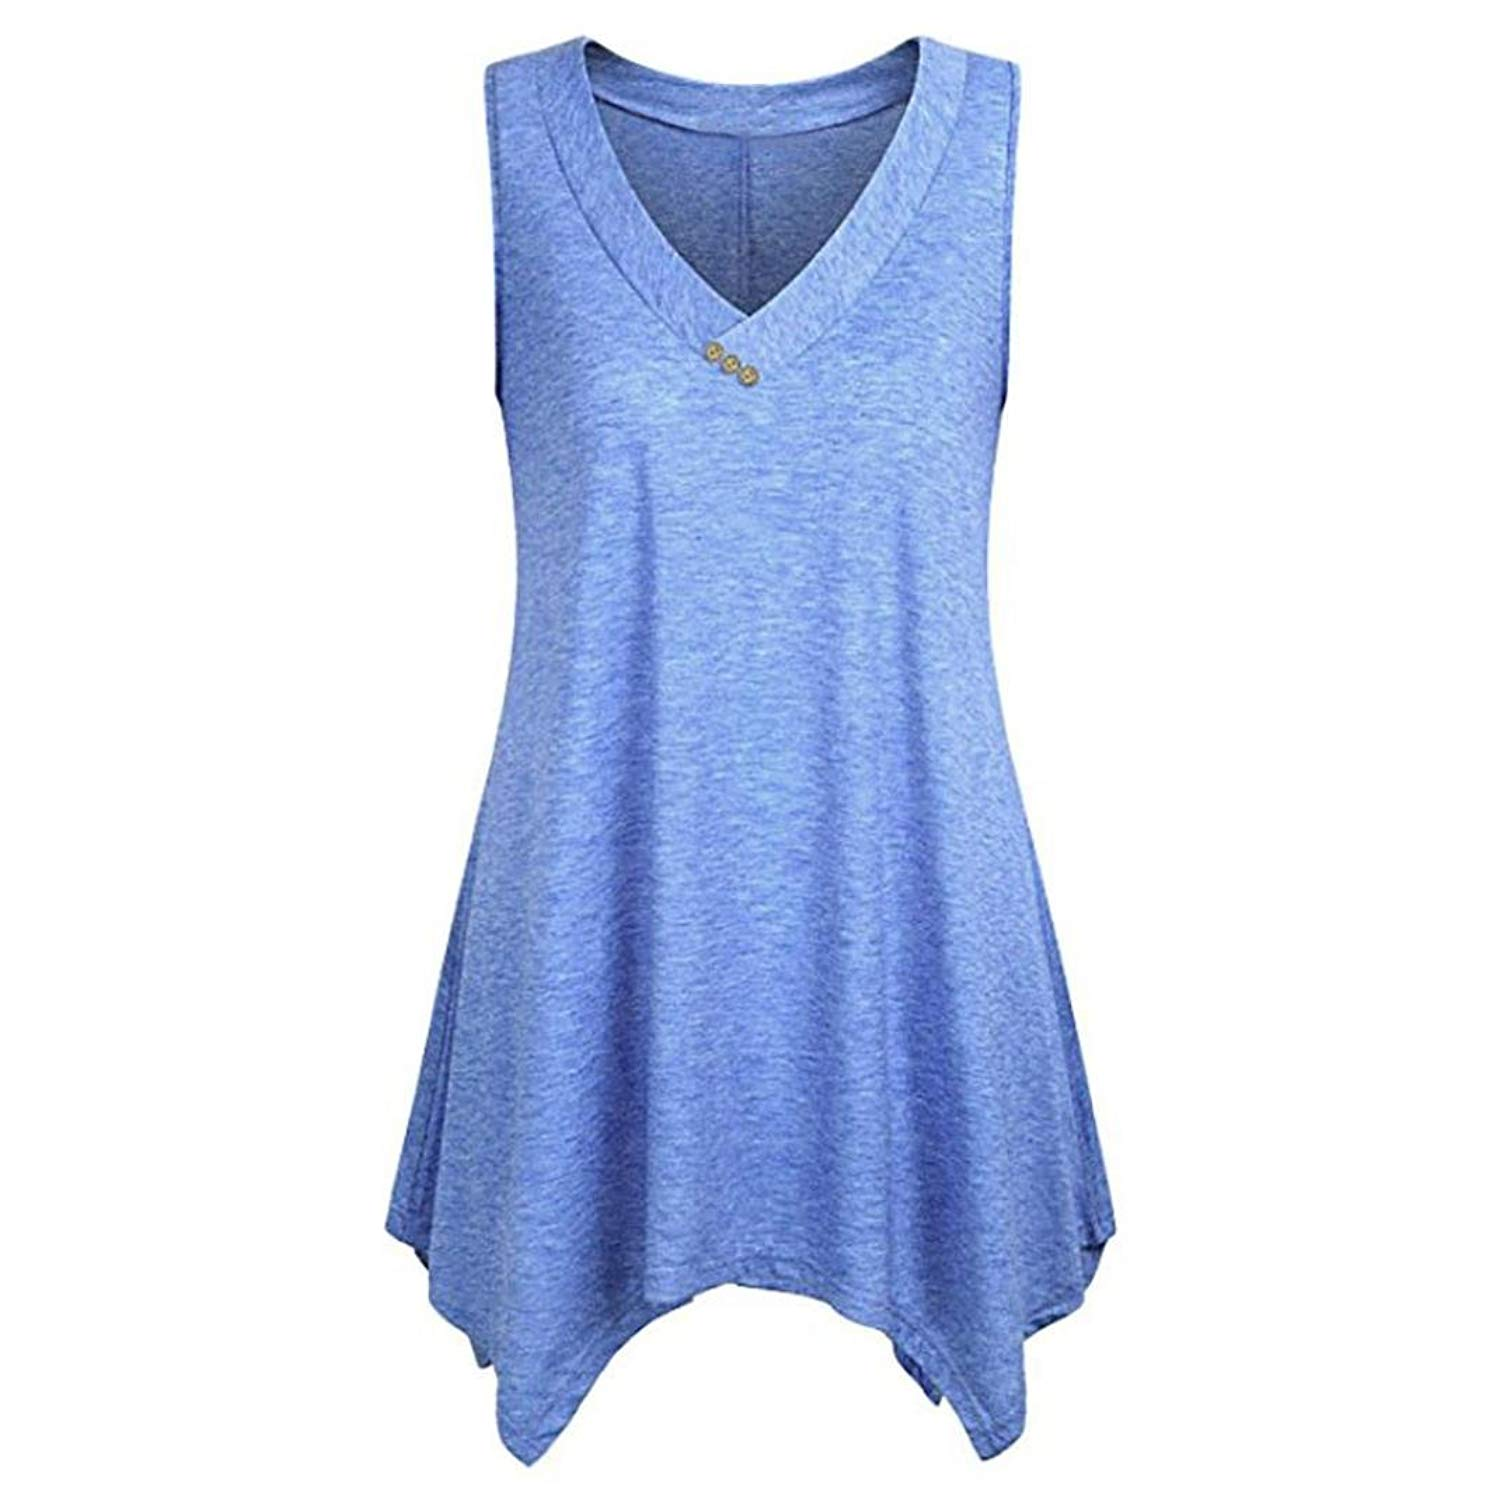 WuyiMC Women Tops, Ladies Plus Size V-Neck Sleeveless Flowy Tunic Tops Irregular Hem Pullover T-Shirt Blouse On Clearance